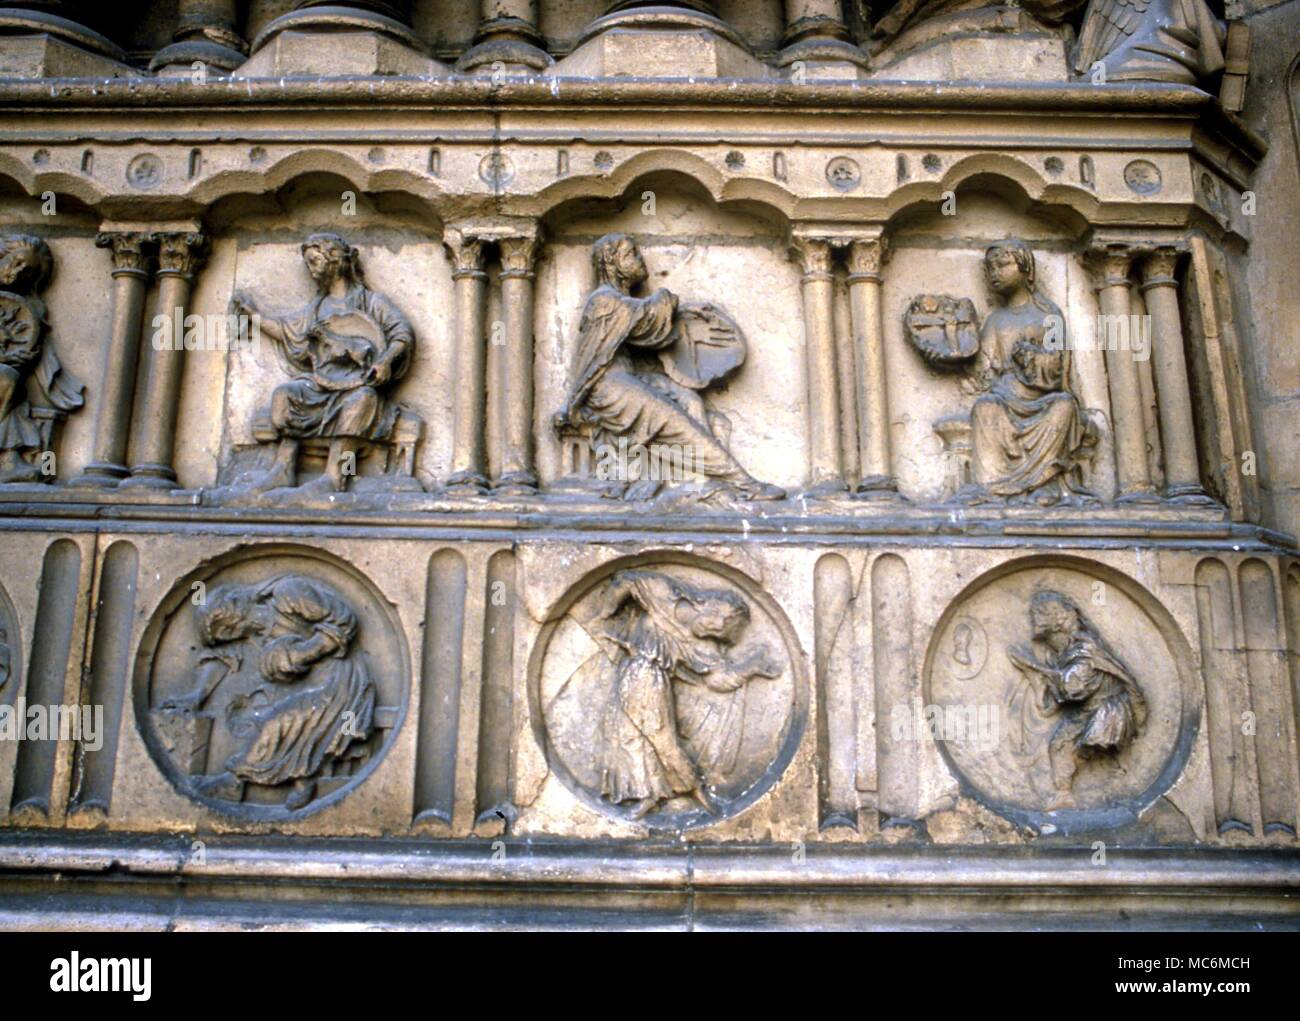 Alchemy Symbols Of Processes Six Alchemical Figures On The Facade